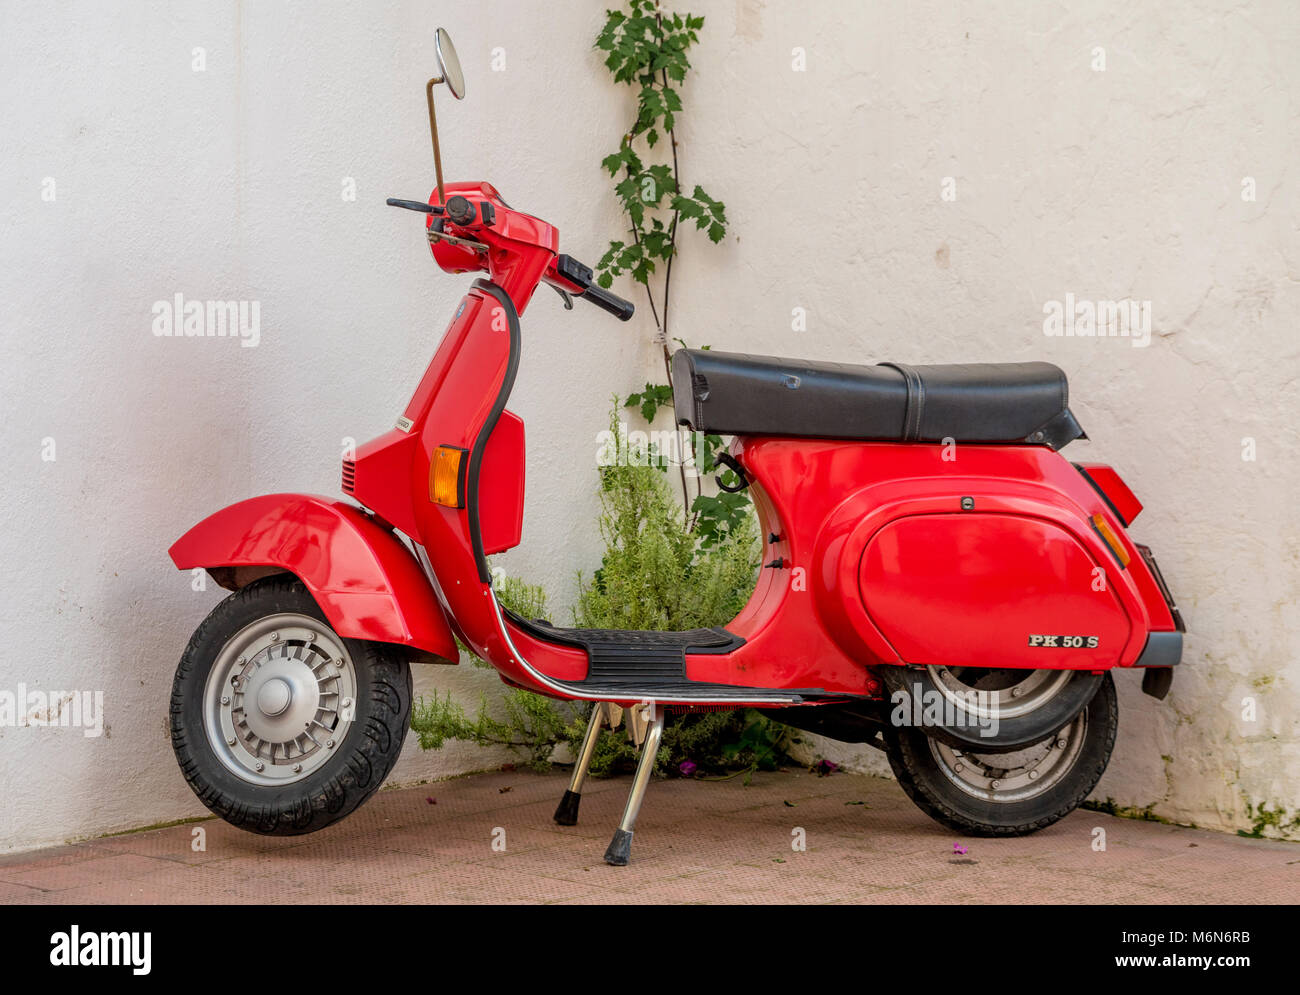 vespa stock photos vespa stock images alamy. Black Bedroom Furniture Sets. Home Design Ideas